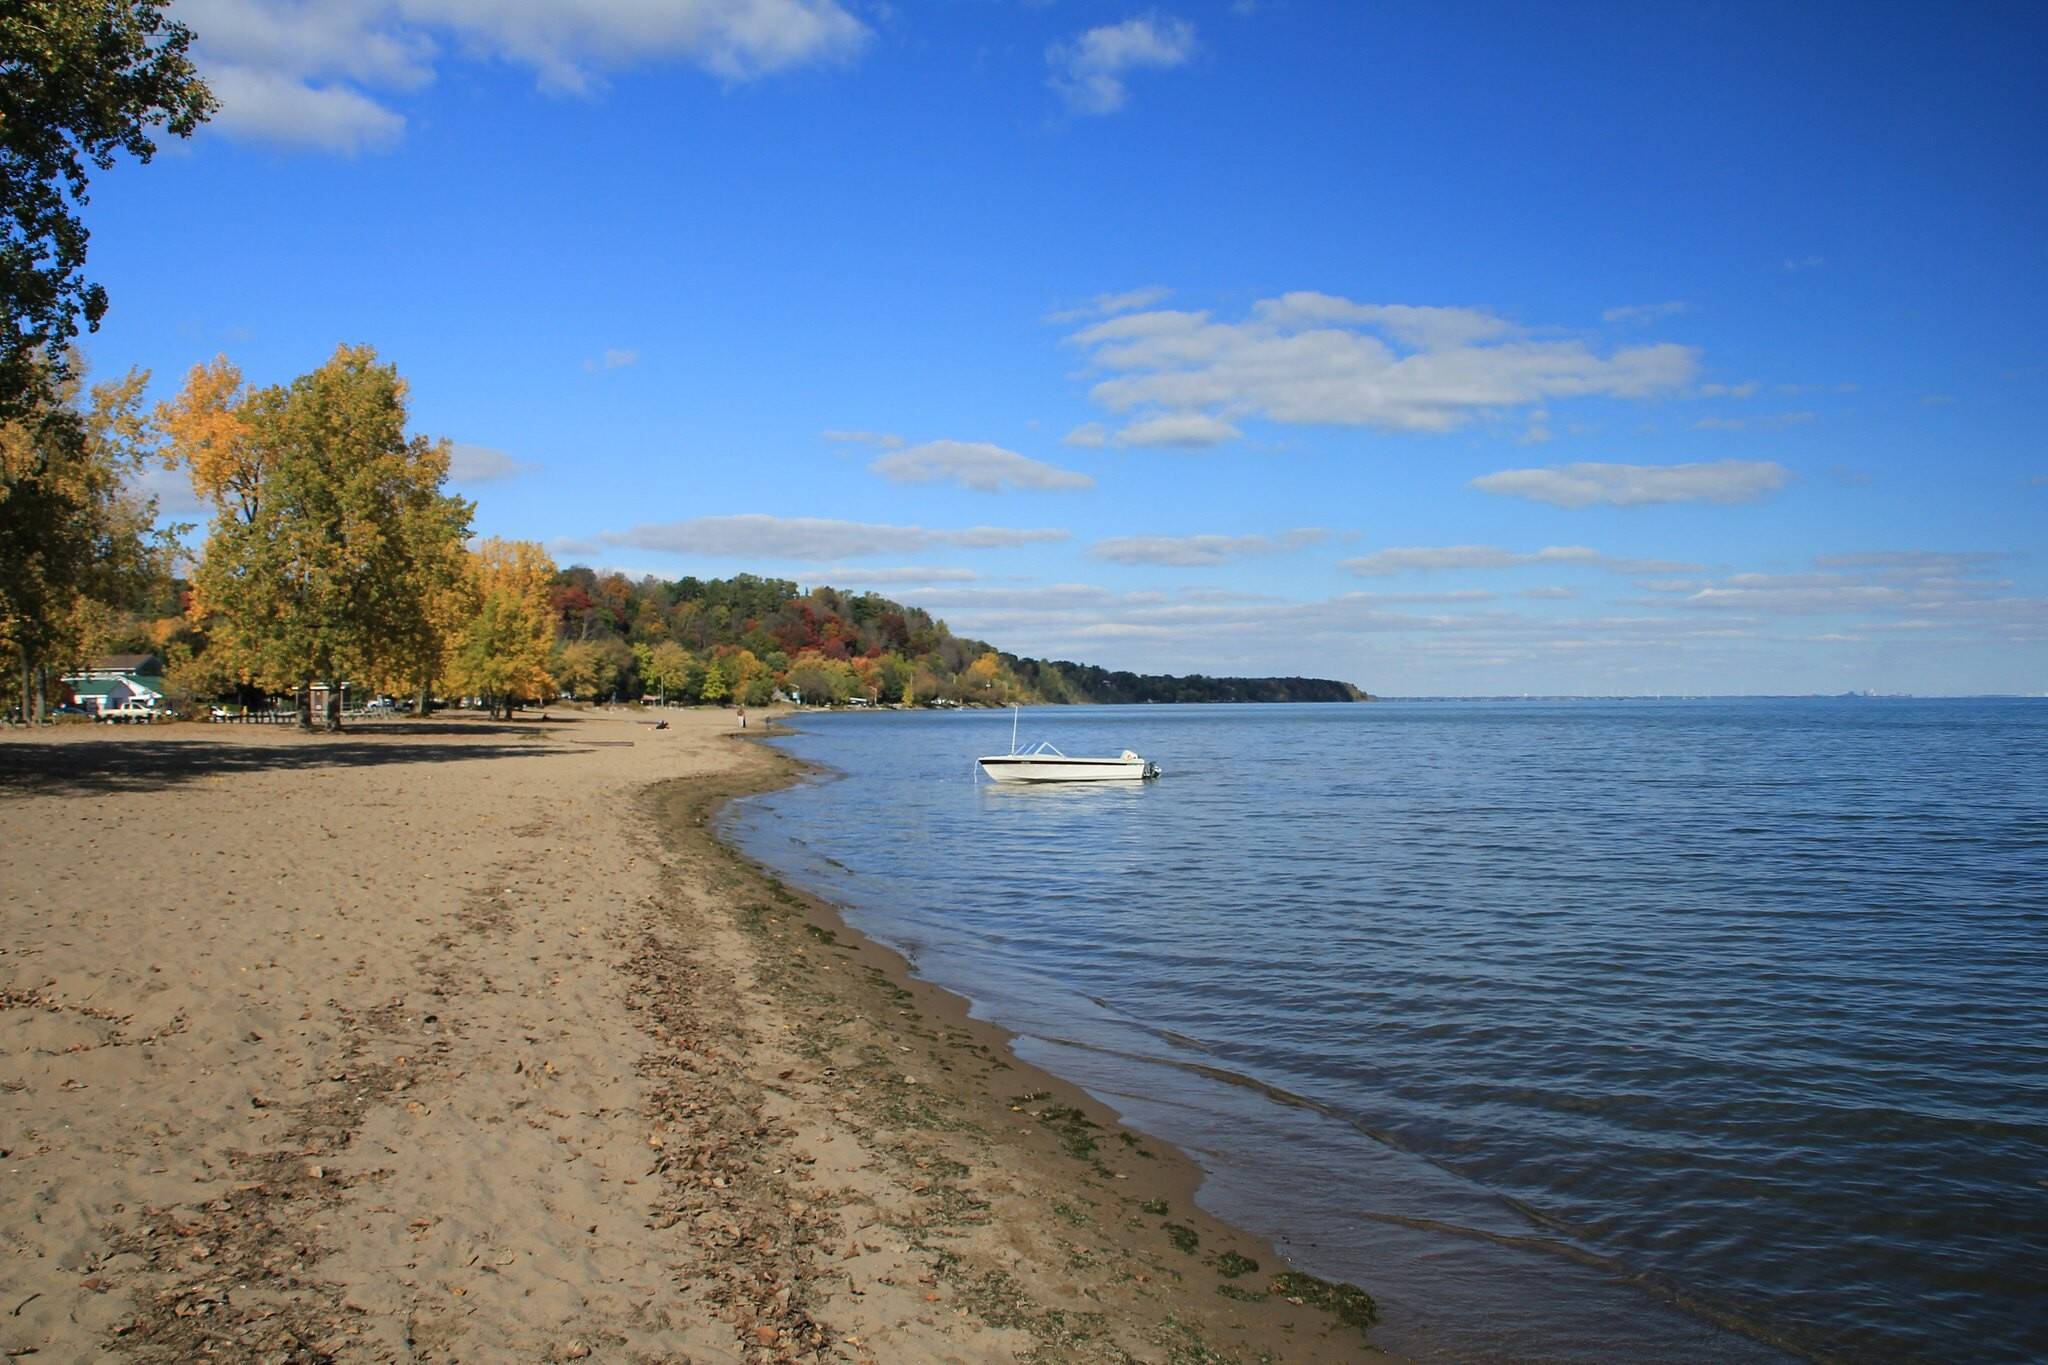 Turkey Point Beach